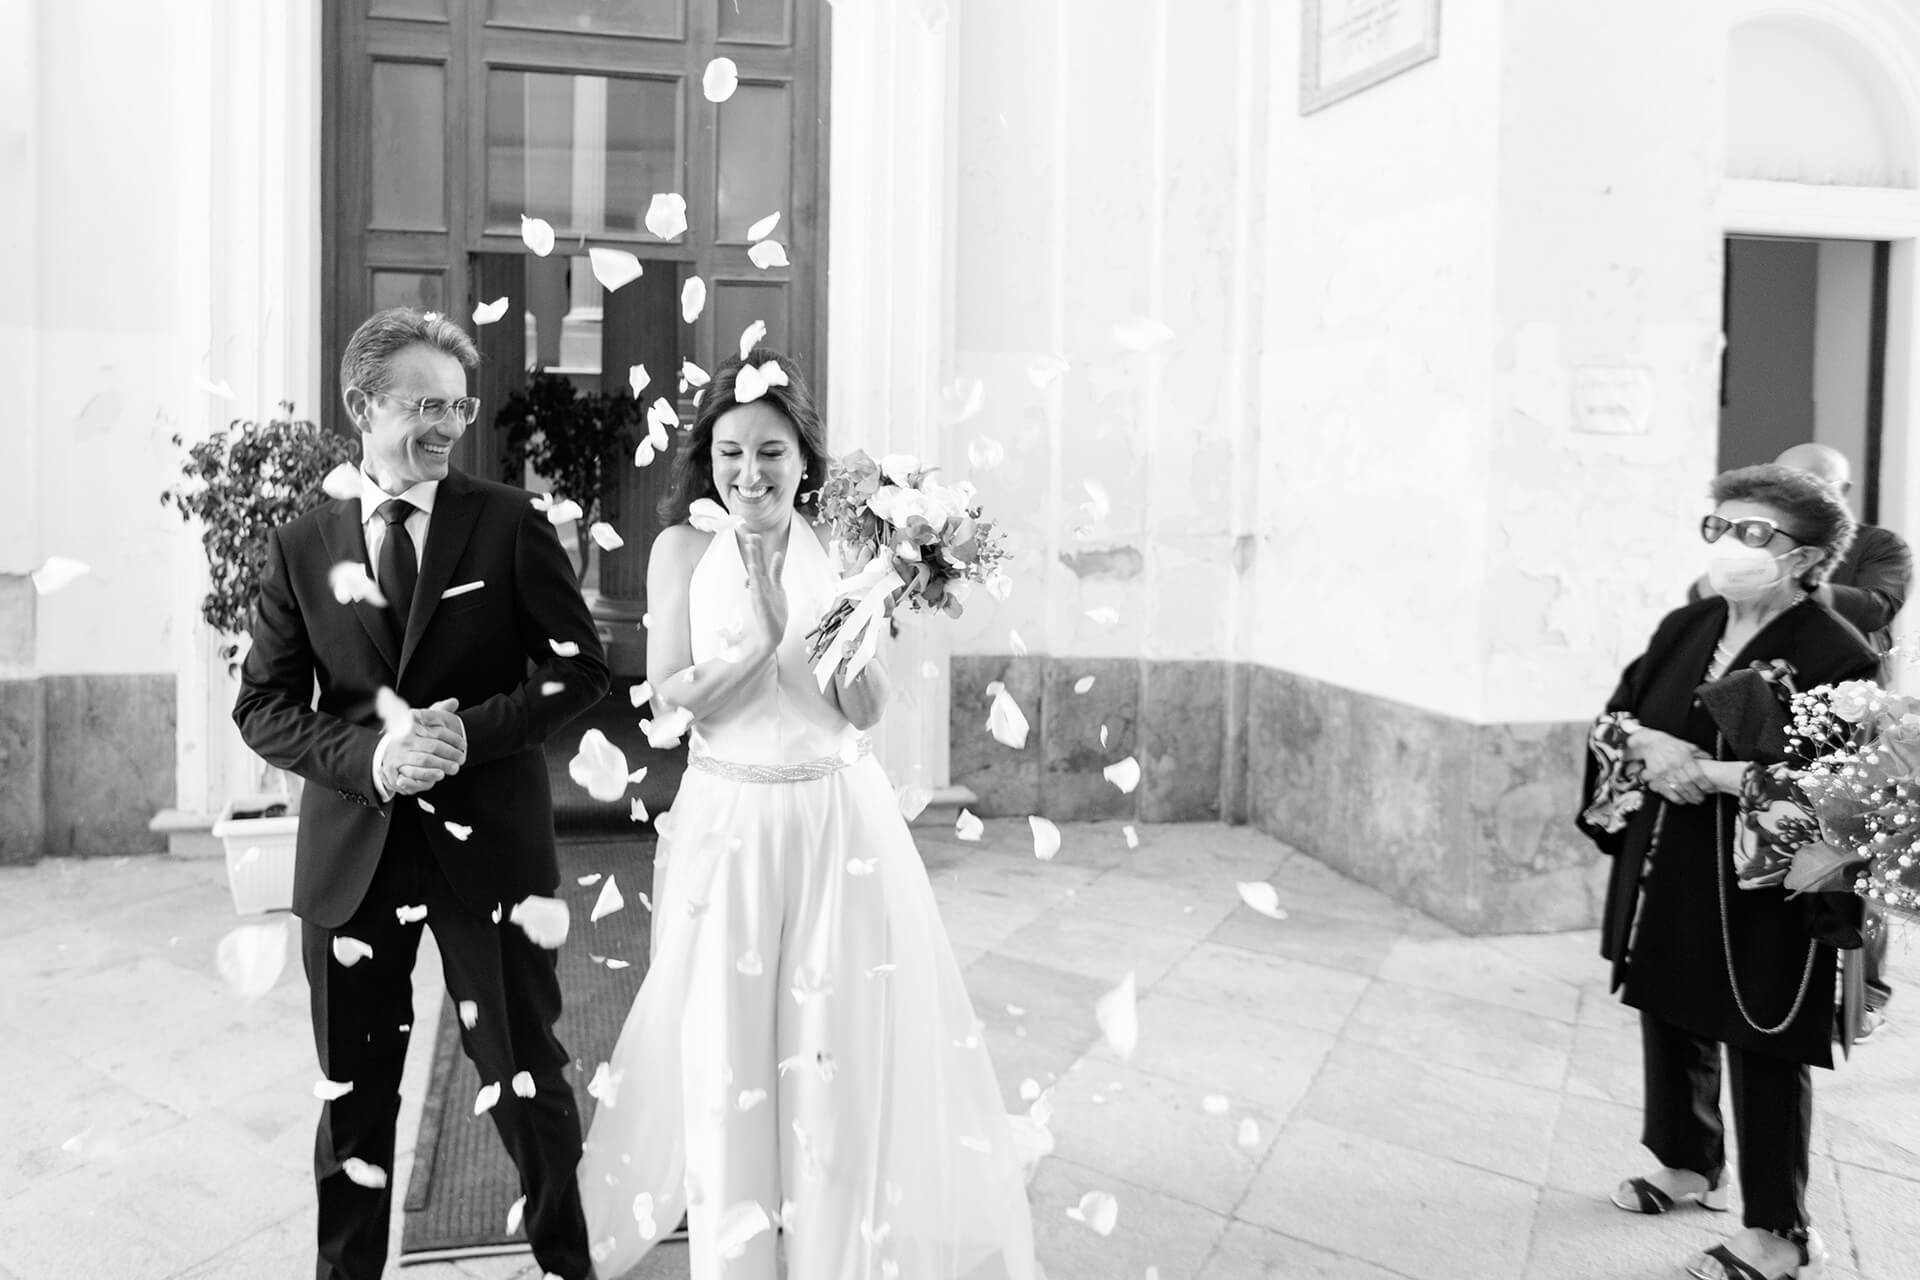 Wedding Photography for Sicily, Italian Image Pro | The emotion has passed and now there is the joy